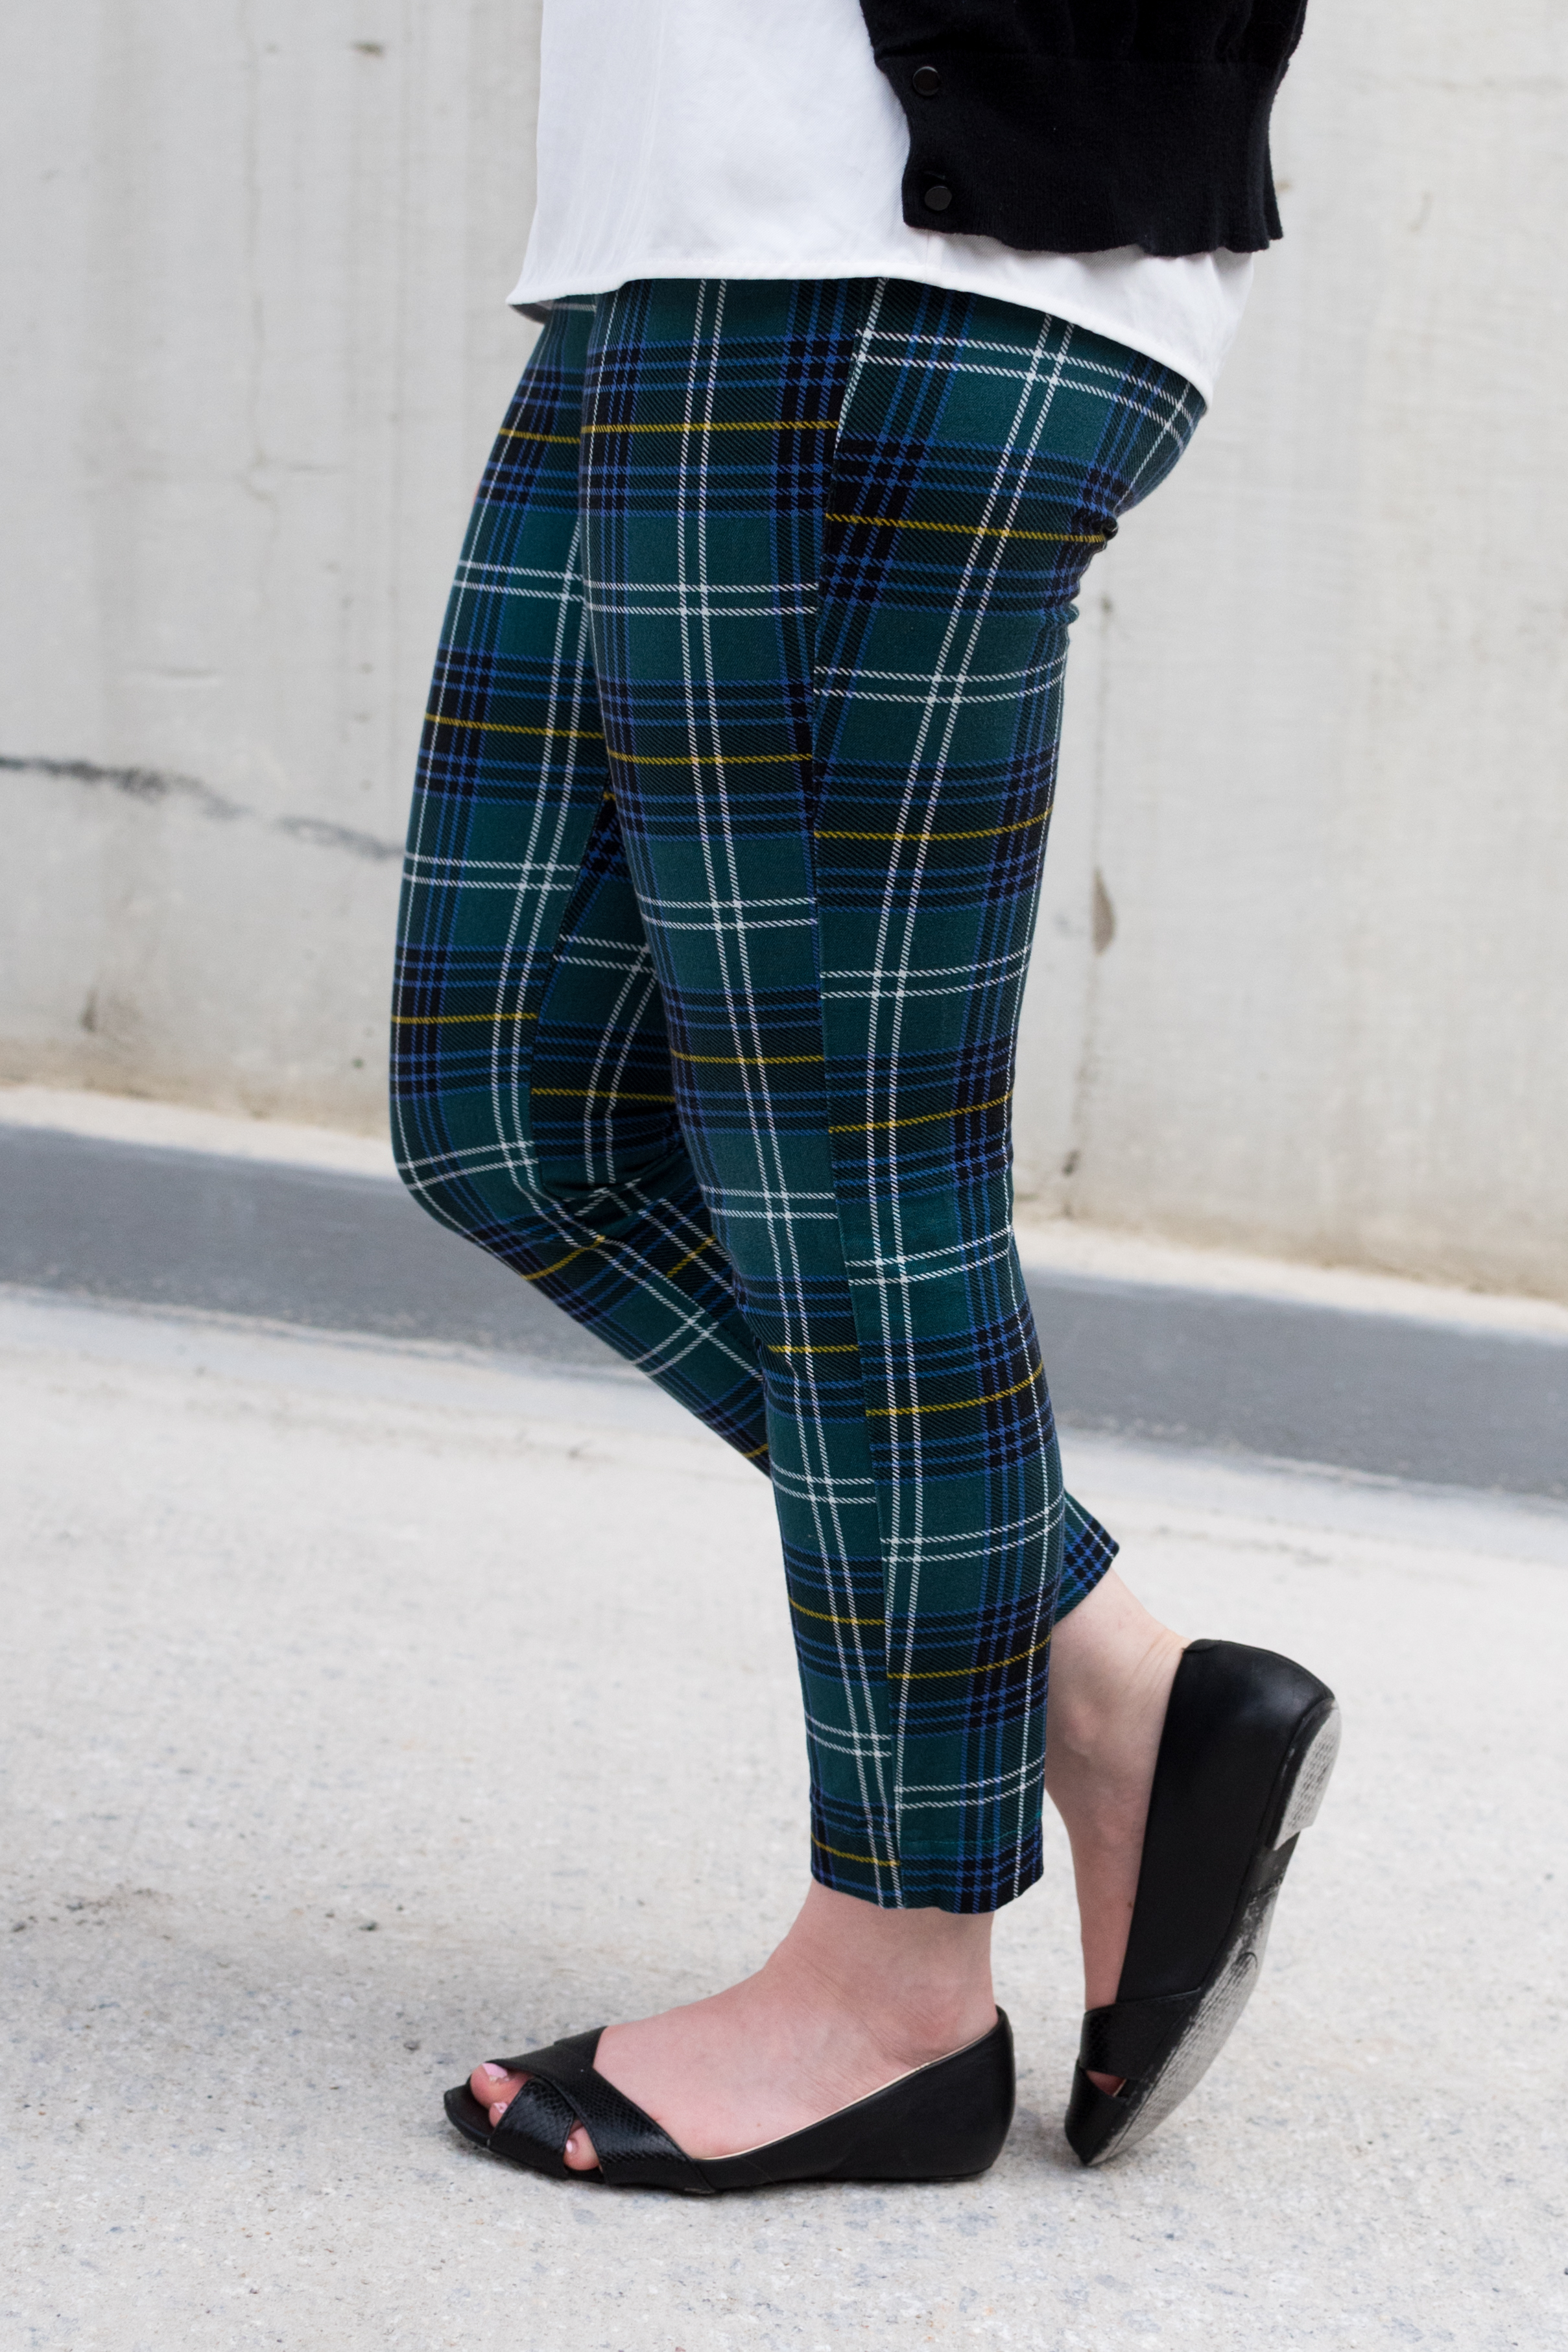 The Summer to Fall Transition | Something Good, @danaerinw , plaid pants, old navy plaid pants, women's fashion